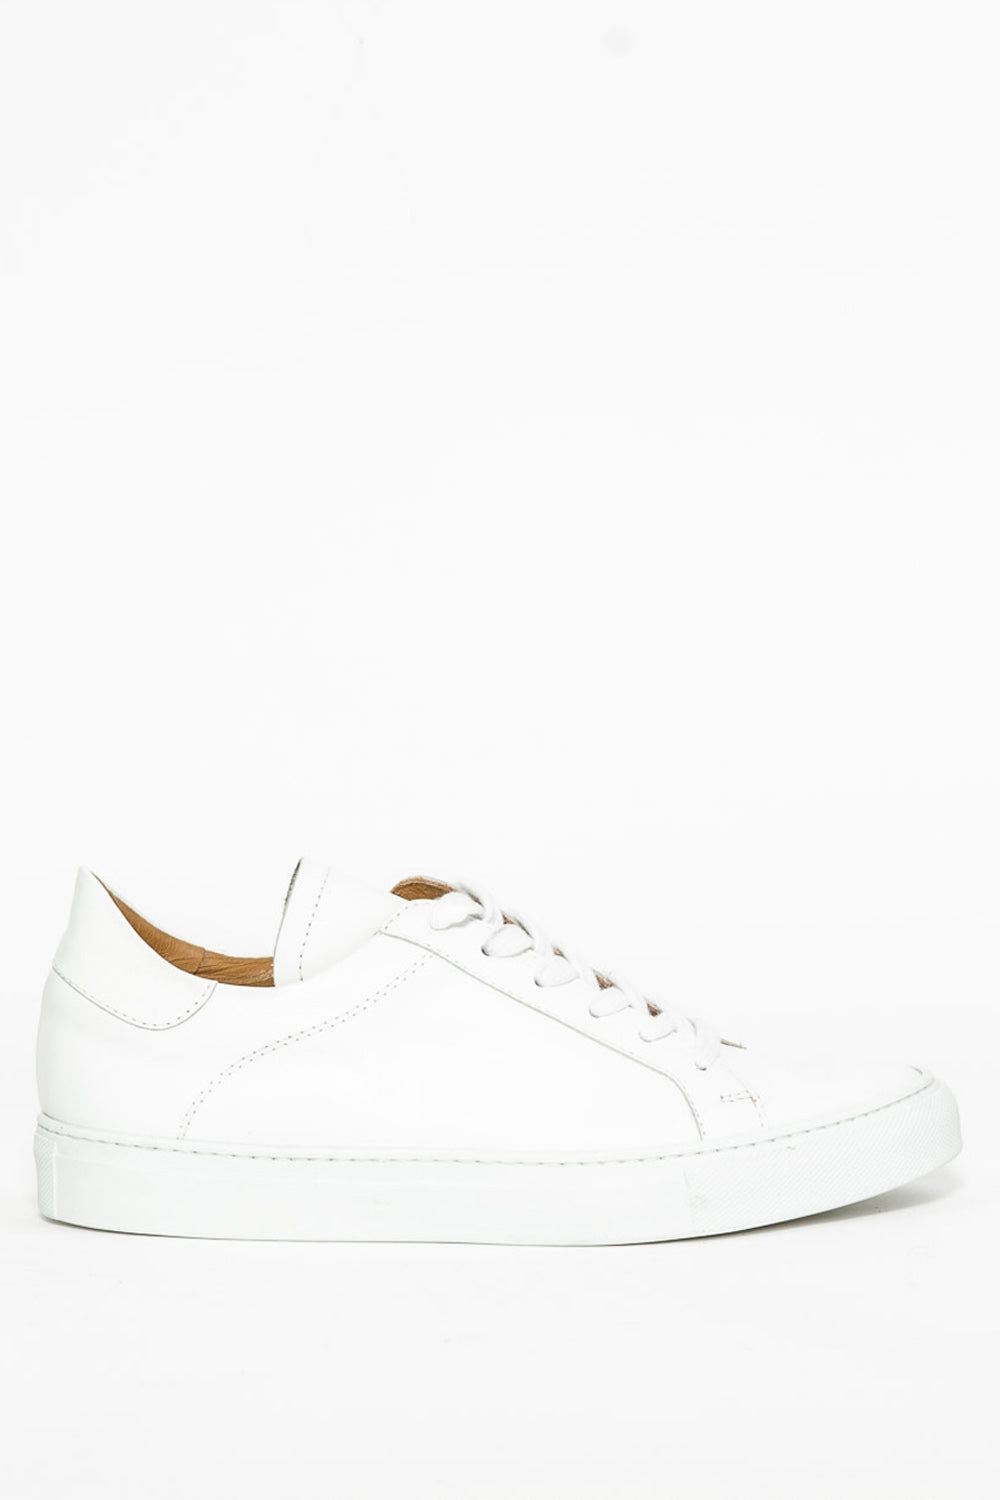 MADISON ET CIEKATE LEATHER LOW TOP SNEAKERS27563